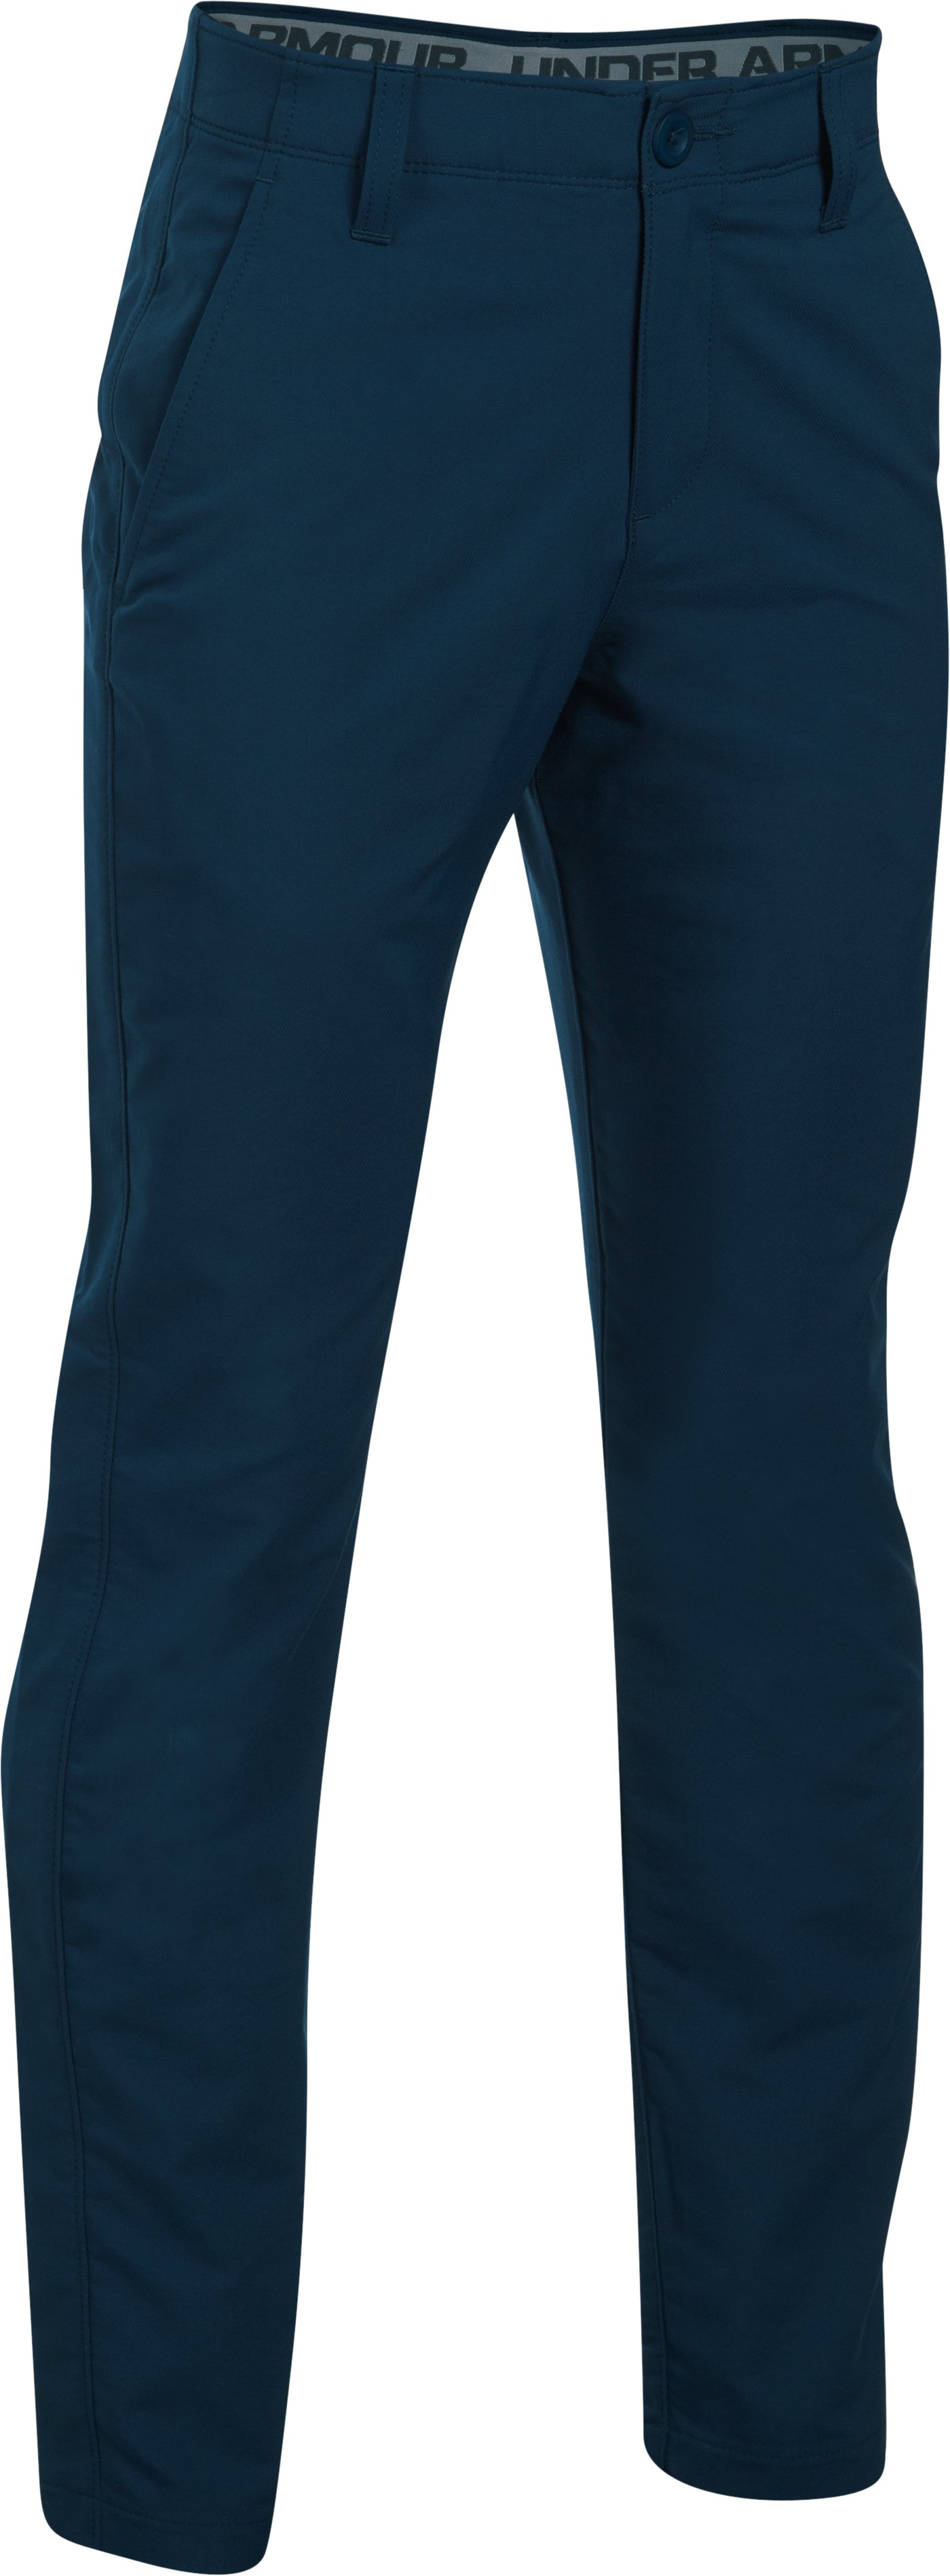 Boys' UA Match Play Pants, Academy,